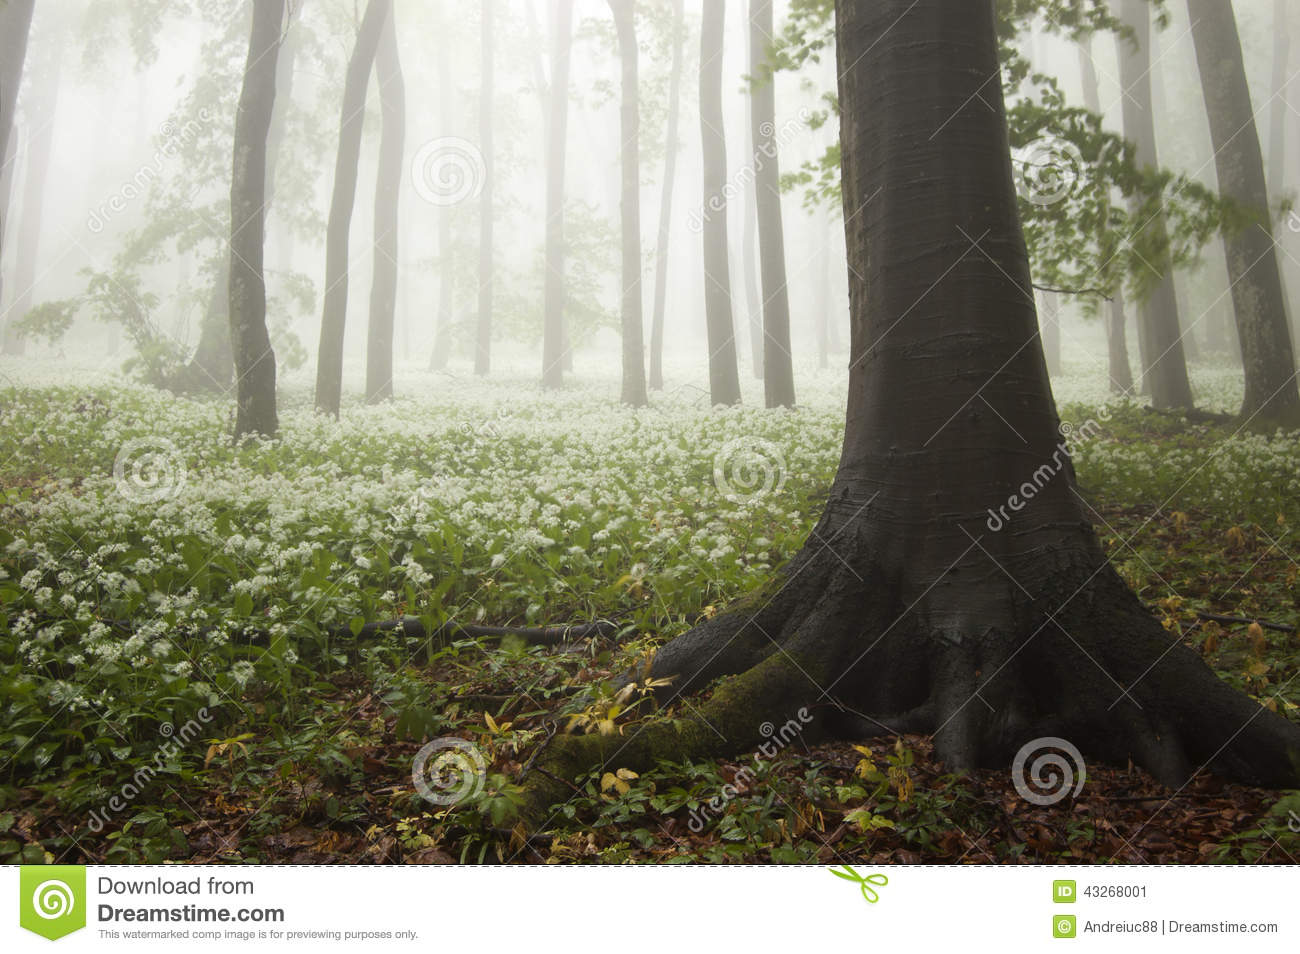 Spring in the forest with flowers in bloom and fog